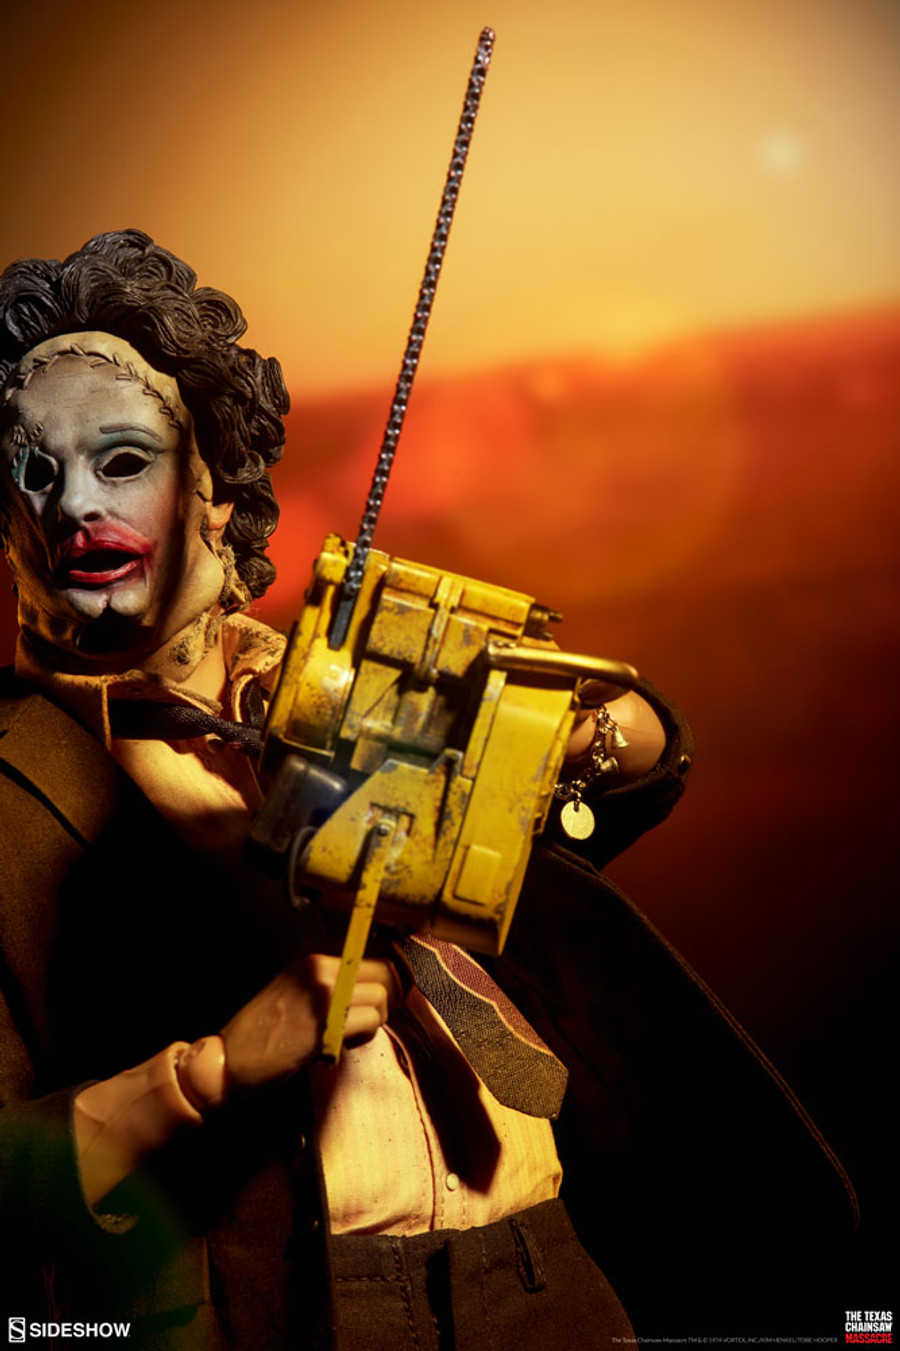 Sideshow - The Texas Chainsaw Massacre - Leatherface Deluxe